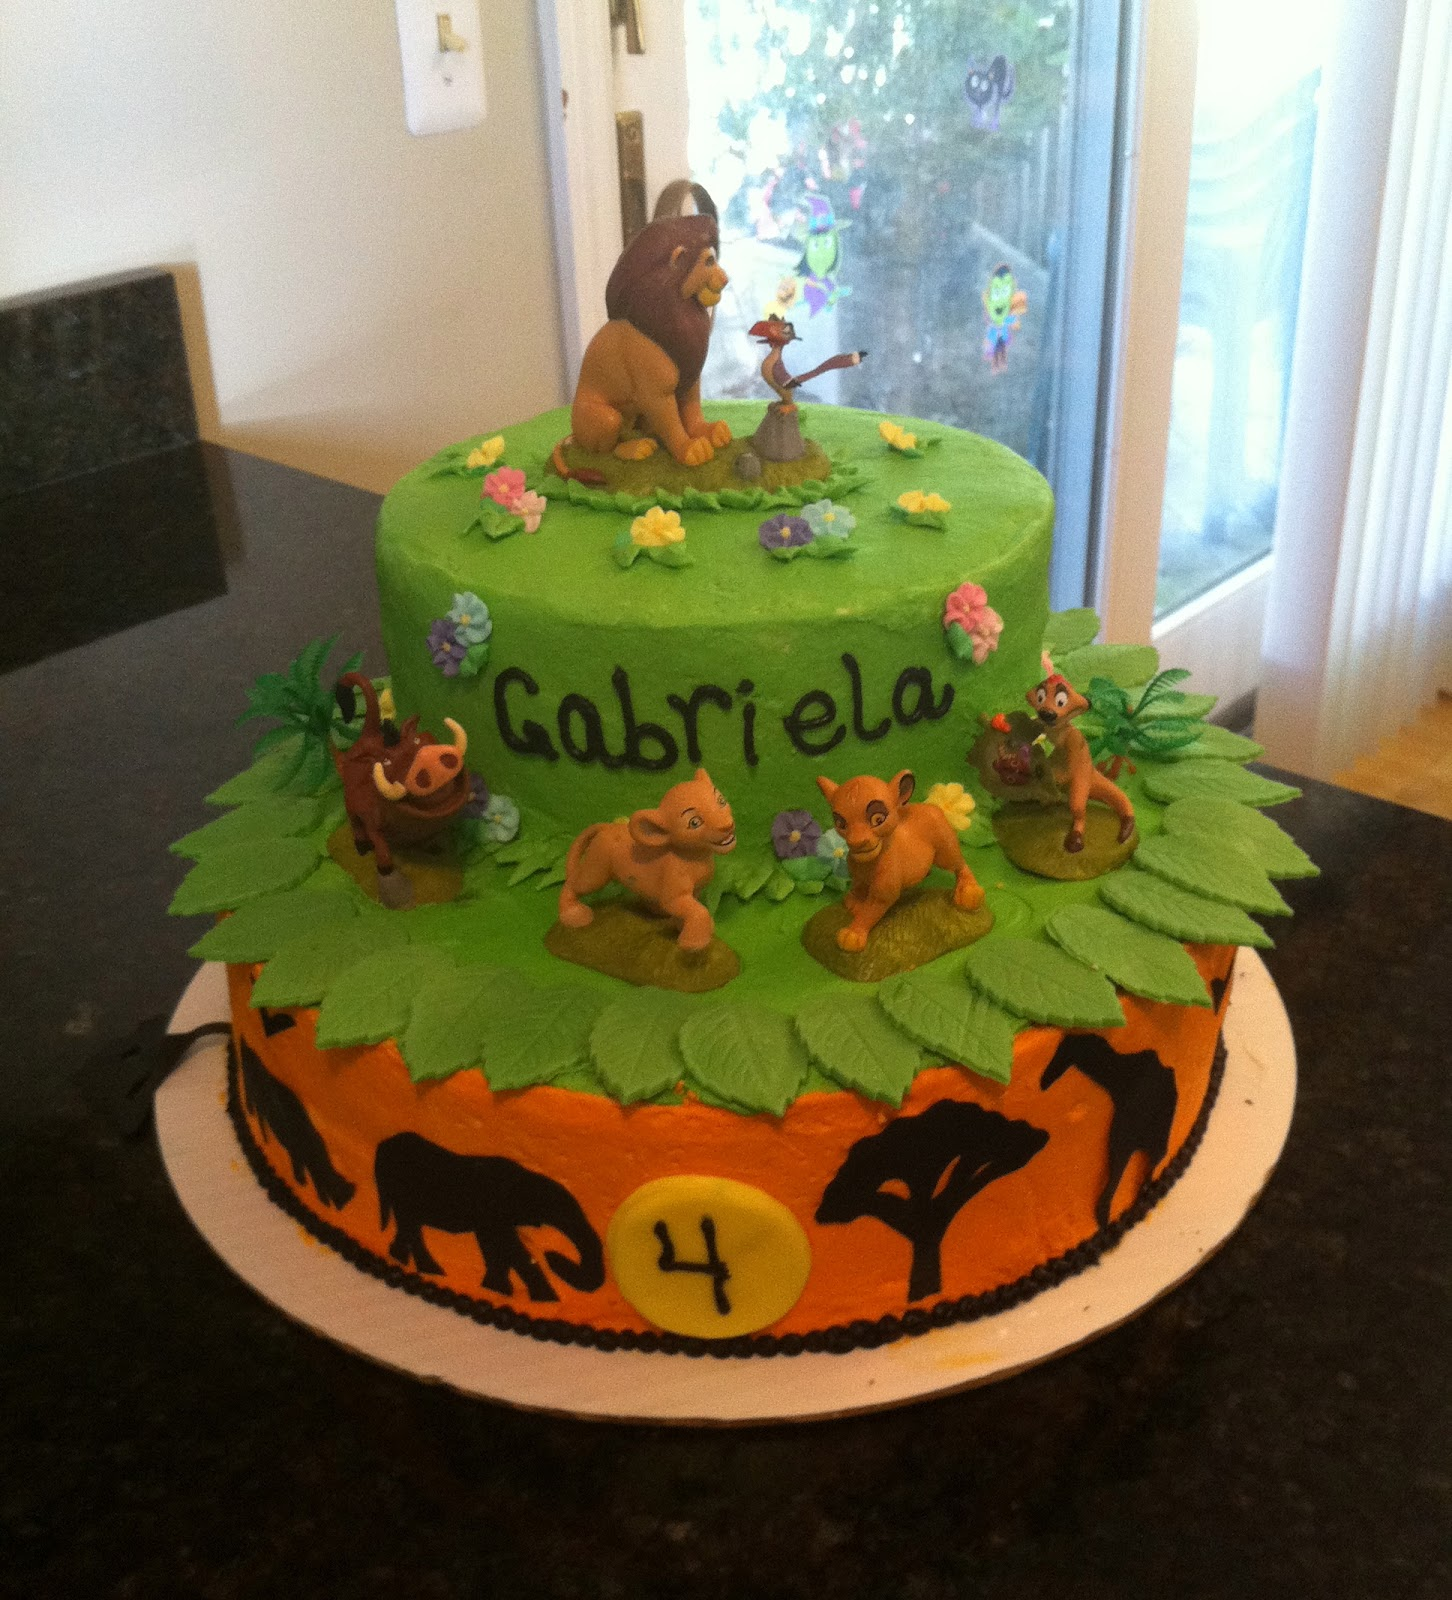 Lion King Cake Decoration Ideas : Learn more at 4.bp.blogspot.com